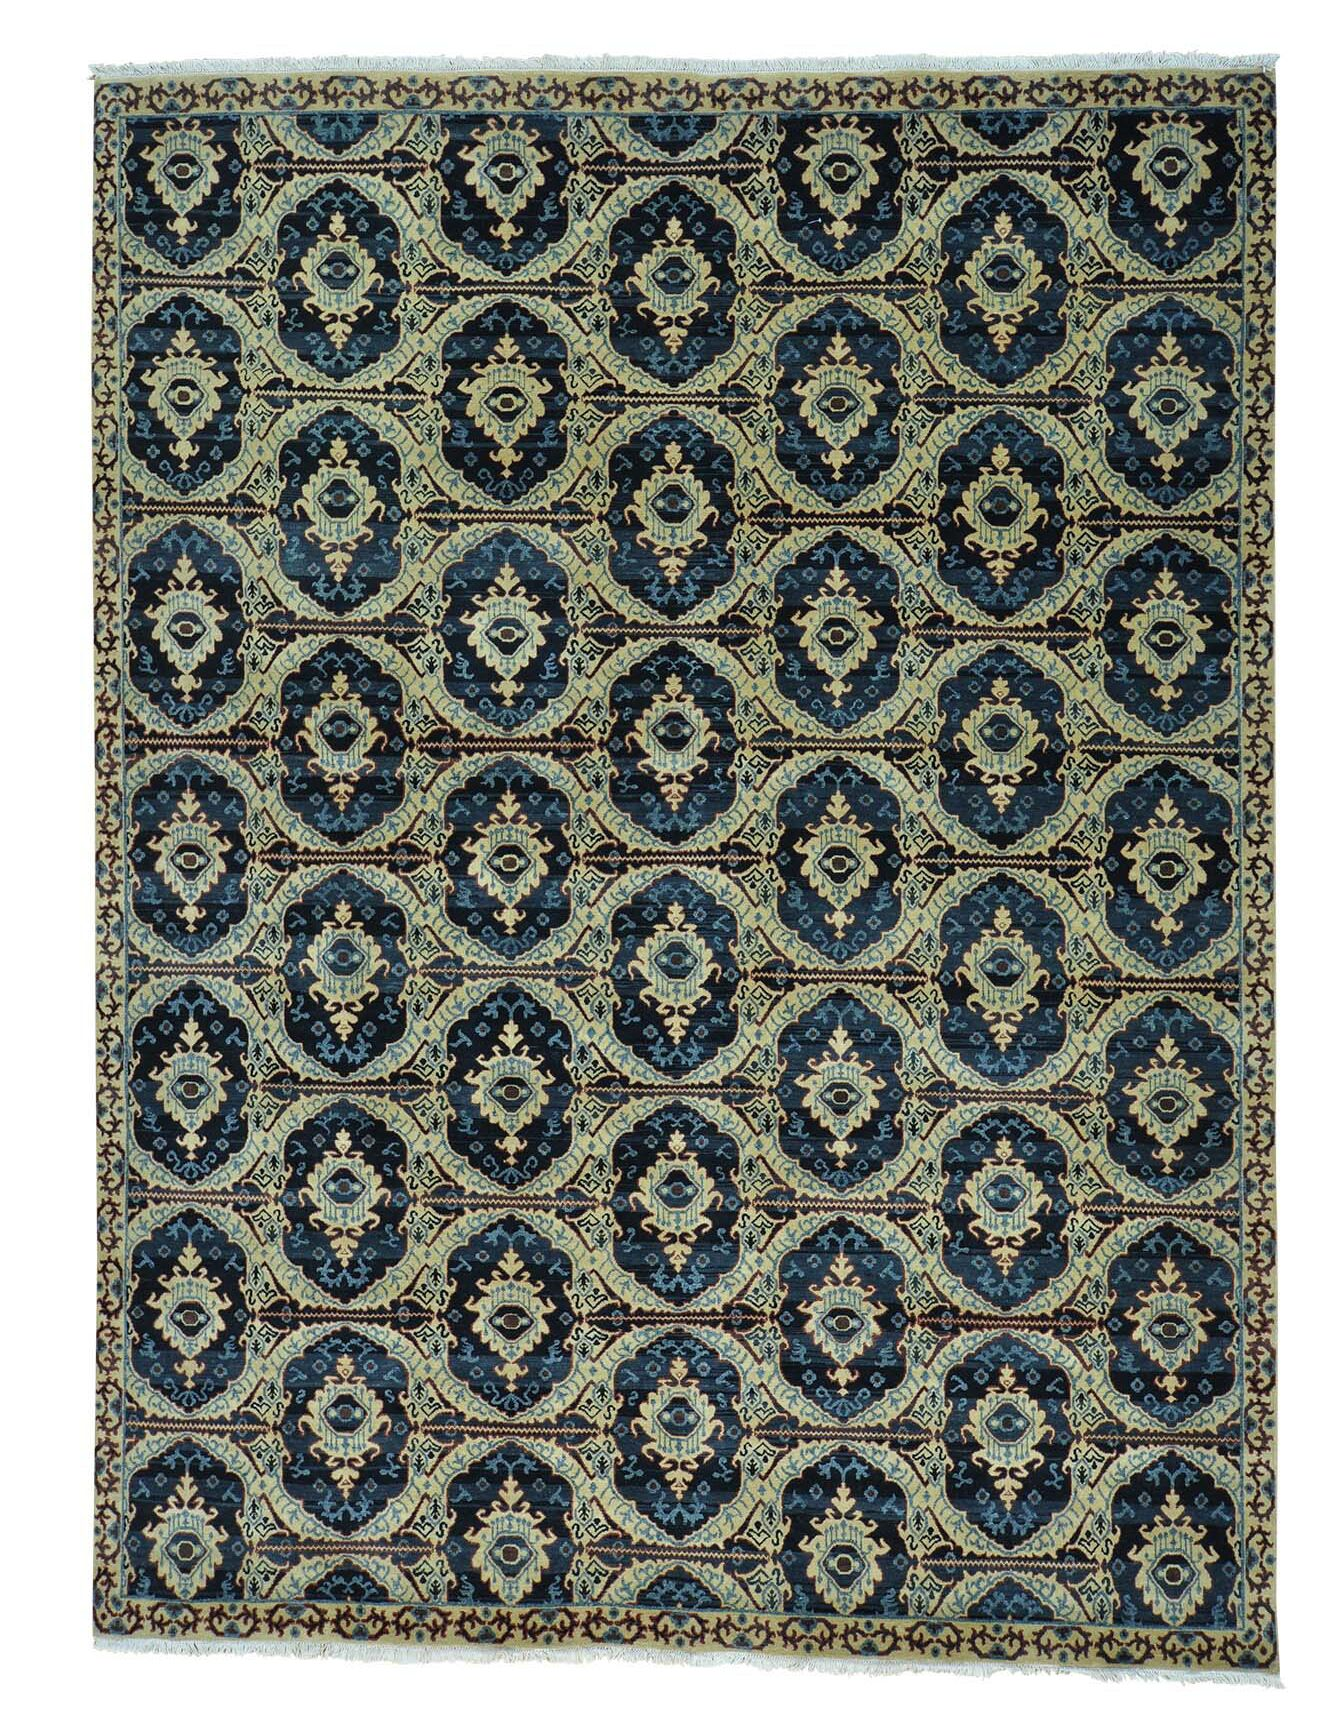 One-of-a-Kind Hand-Knotted Beige/Navy Area Rug